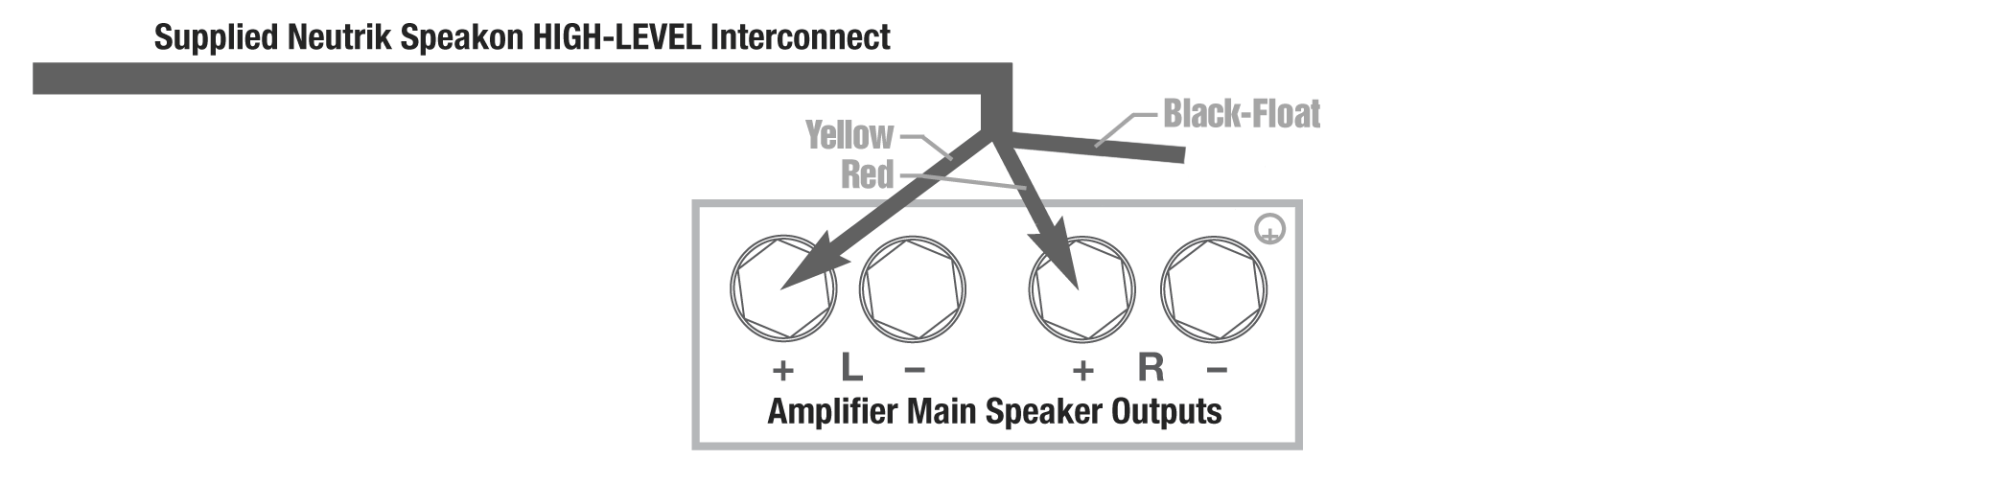 hight resolution of rel speakon cable wiring diagram images gallery class d amp connection methods rel acoustics rh